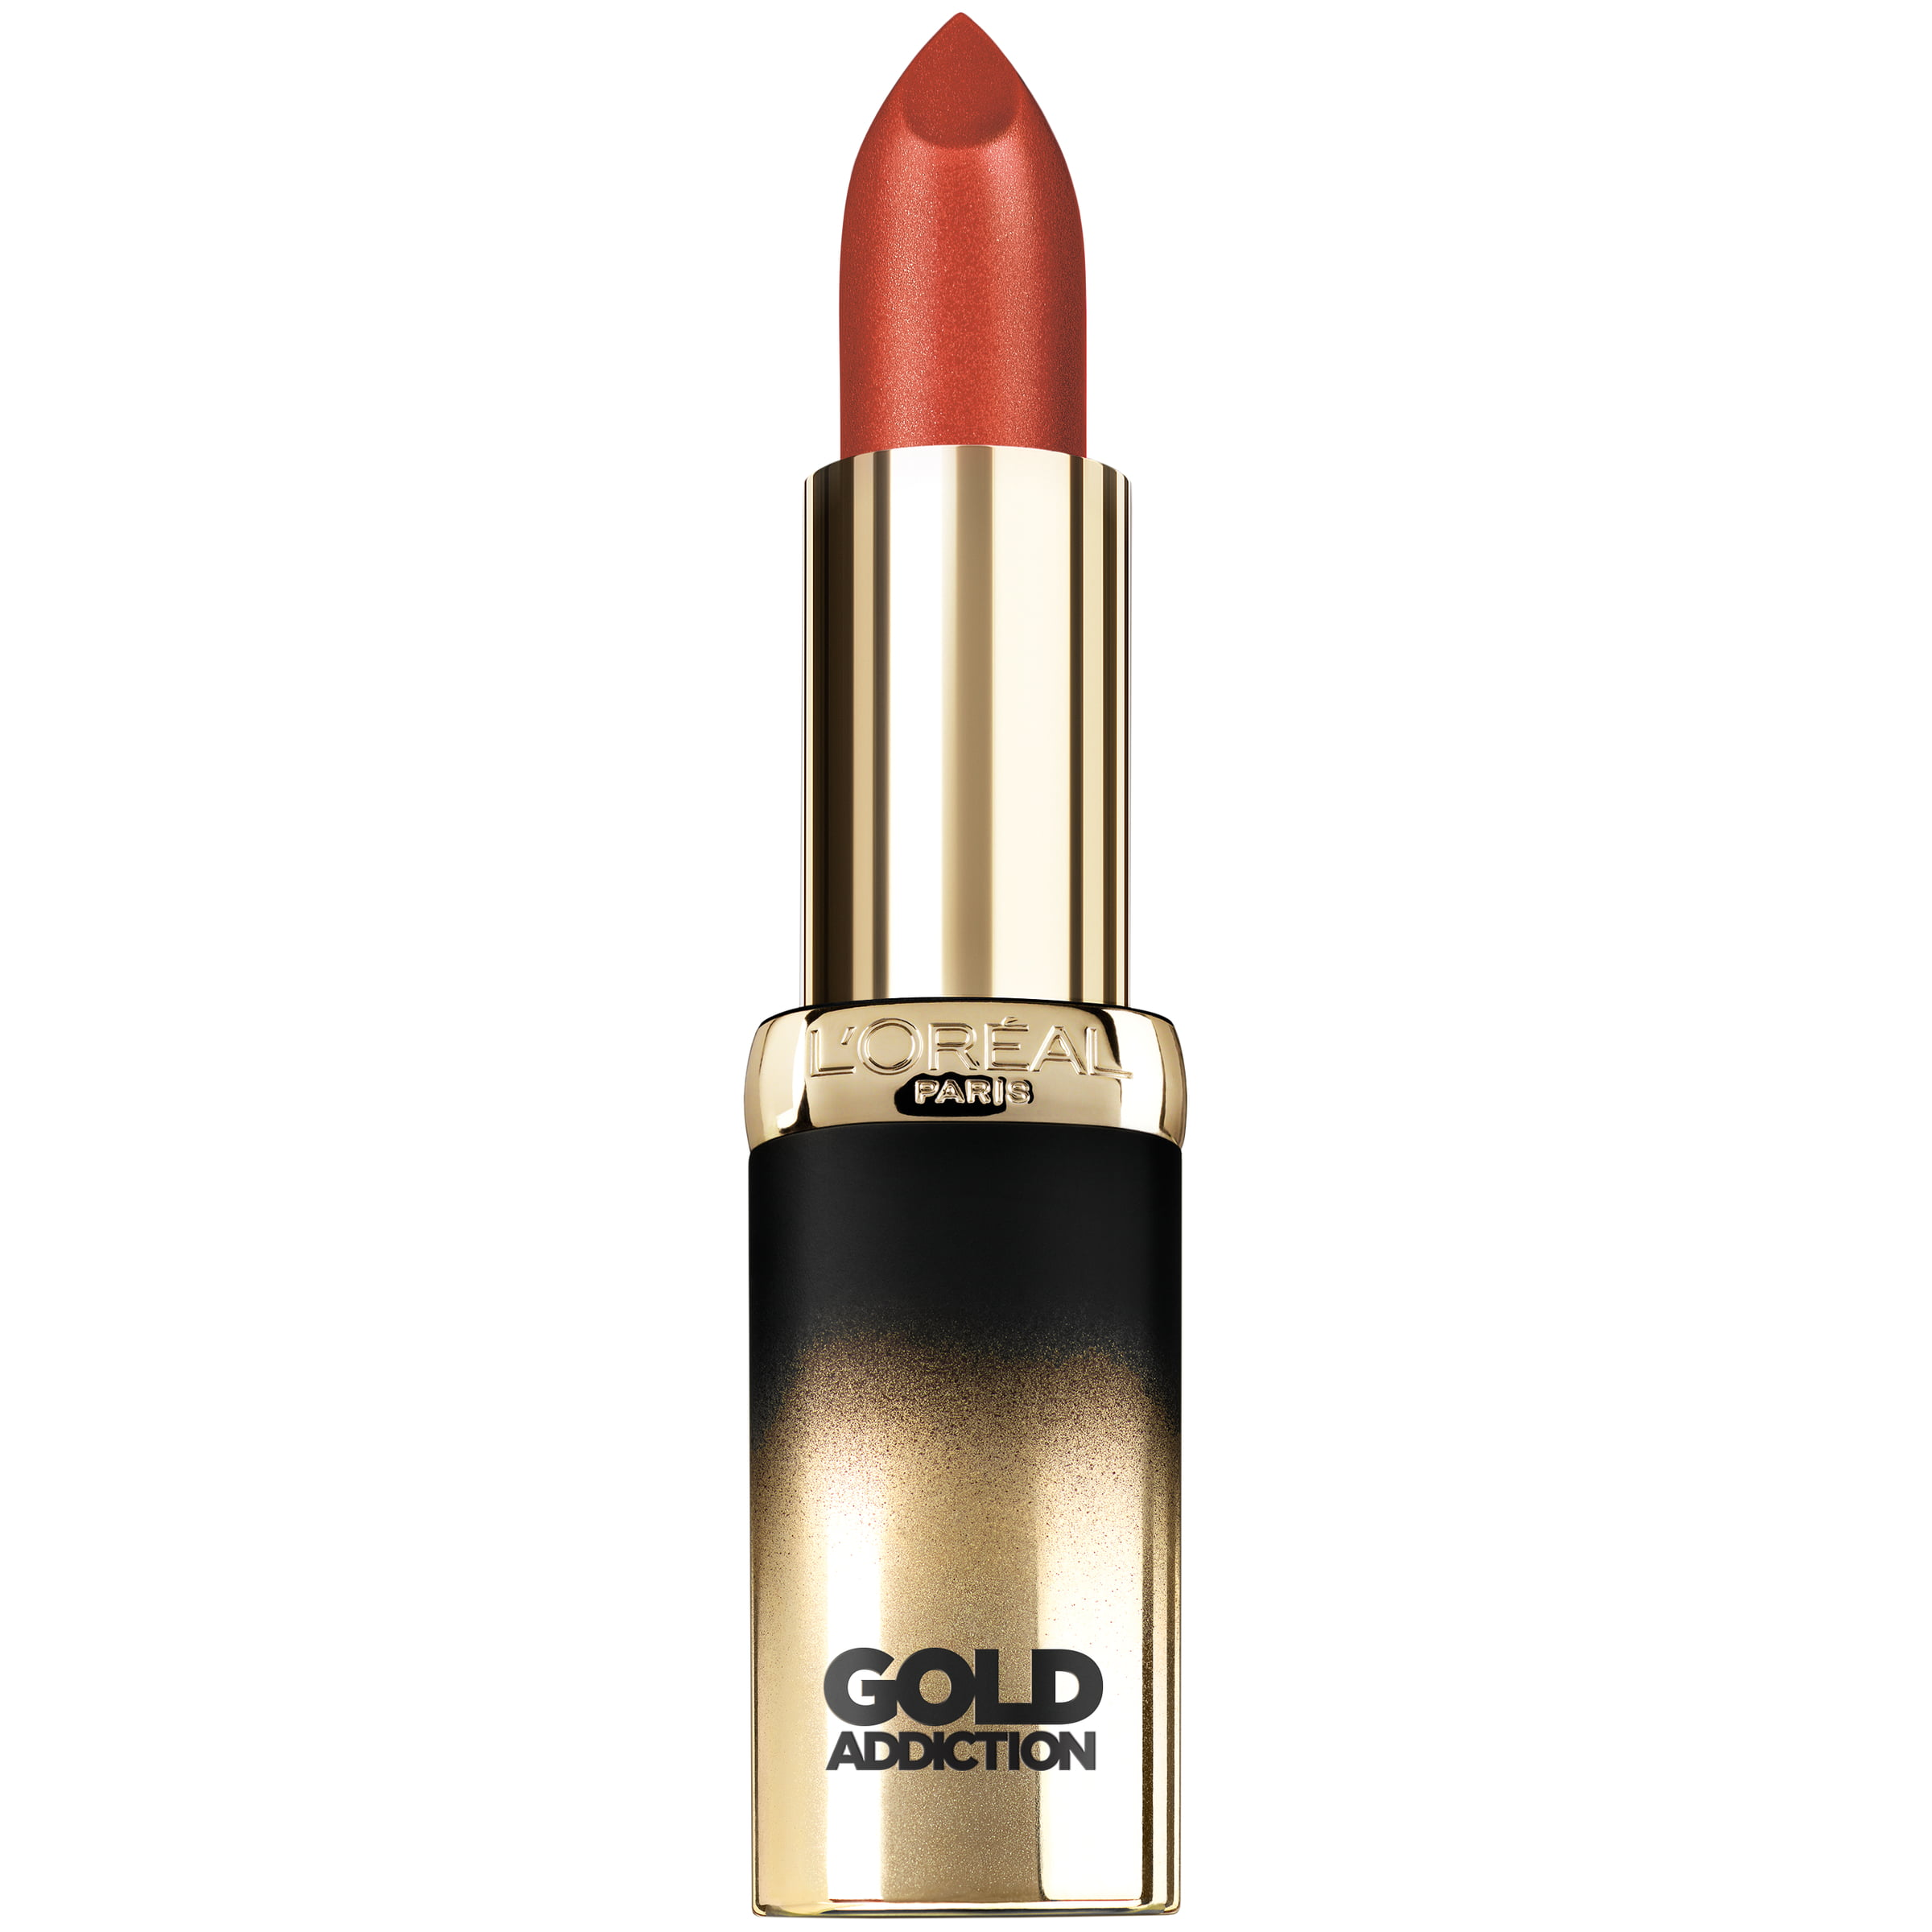 Colour Riche Gold Addiction Lipstick by L'Oreal #3